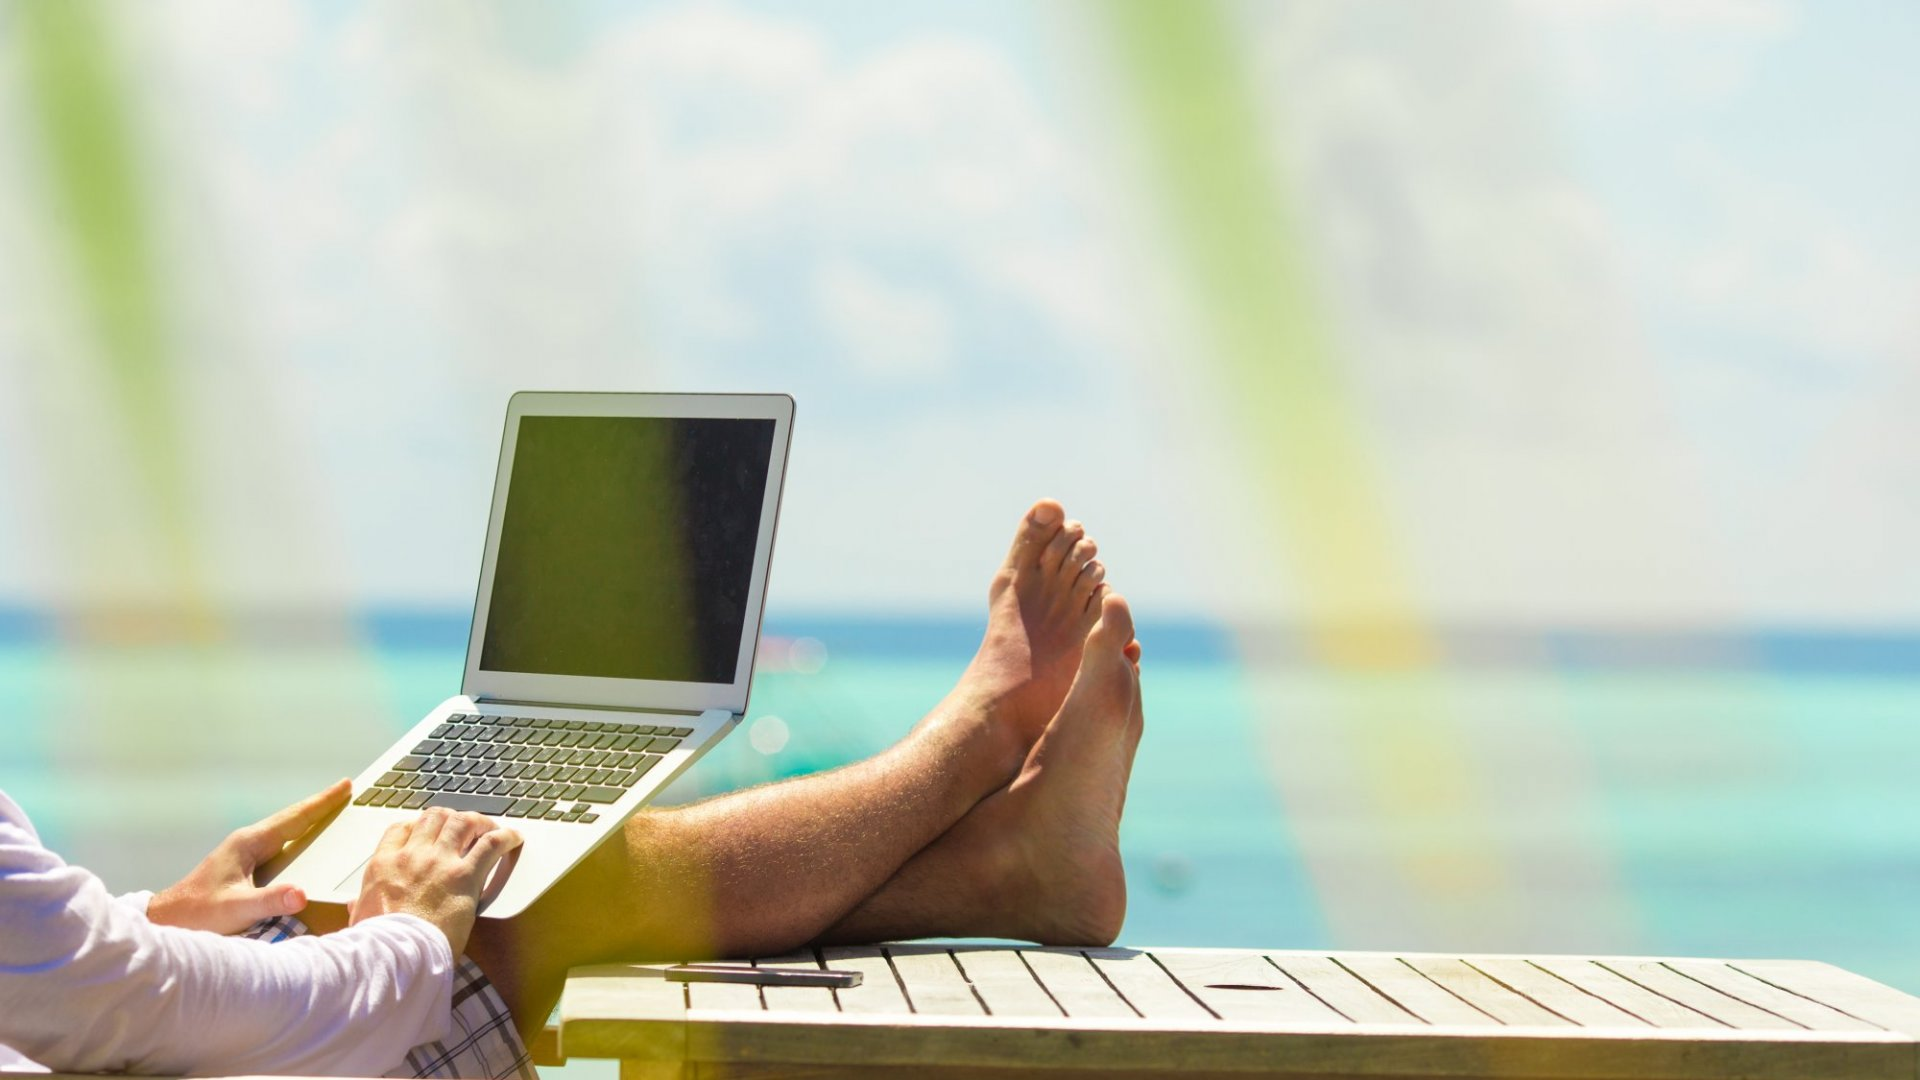 Allow employees to work from where they want, even if it's a beach